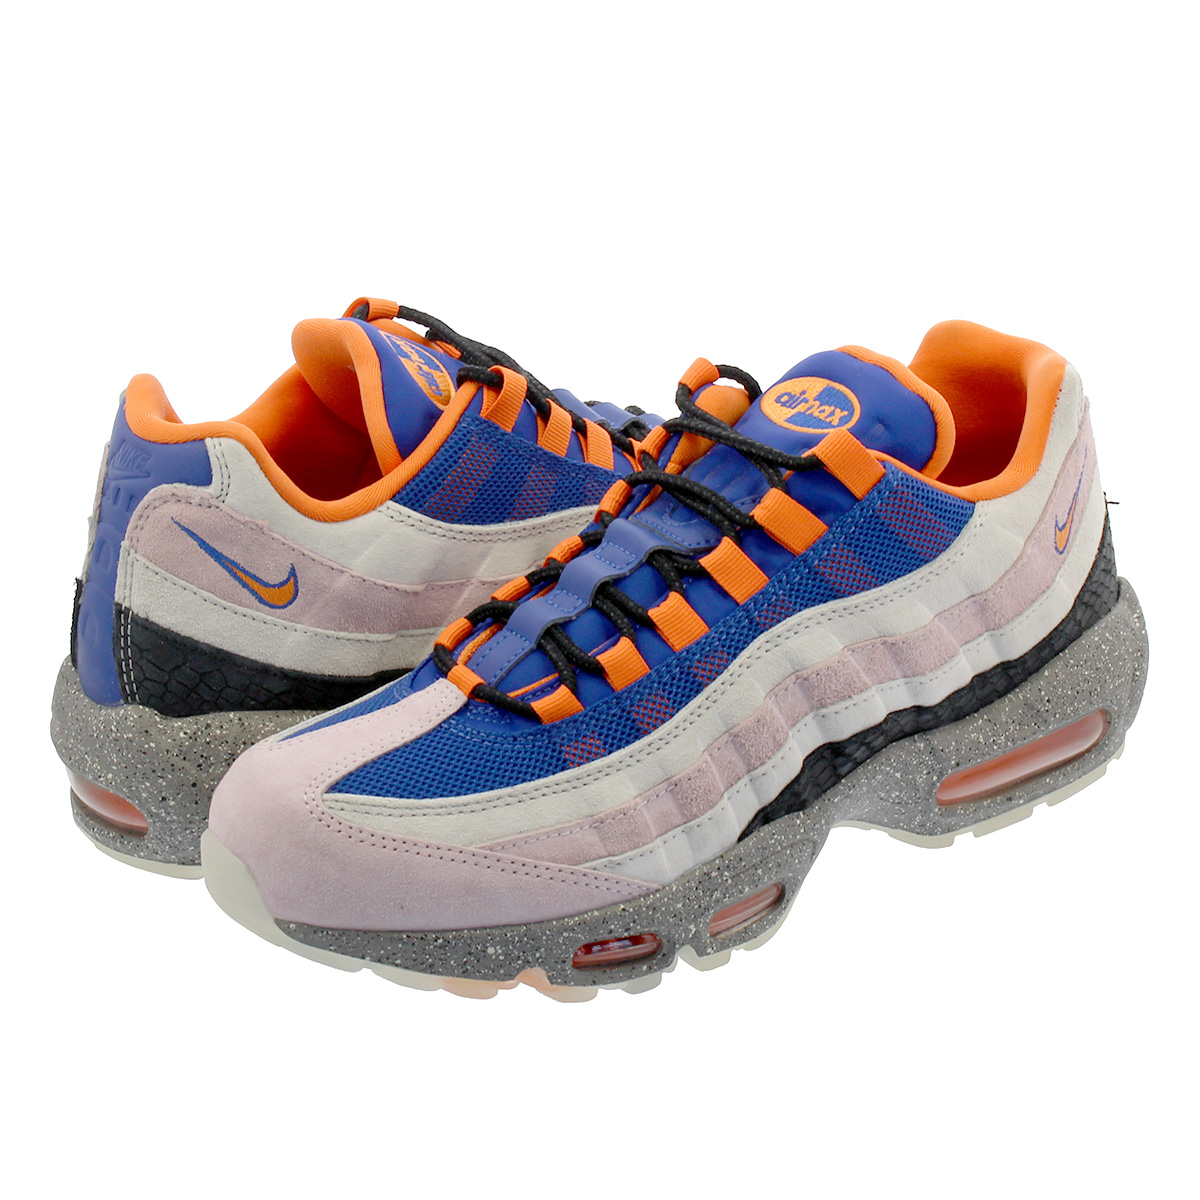 【お買い物マラソンSALE】 NIKE AIR MAX 95 ナイキ エア マックス 95 CHAMPAGNE/SAFETY ORANGE/SPORT ROYAL av7014-600